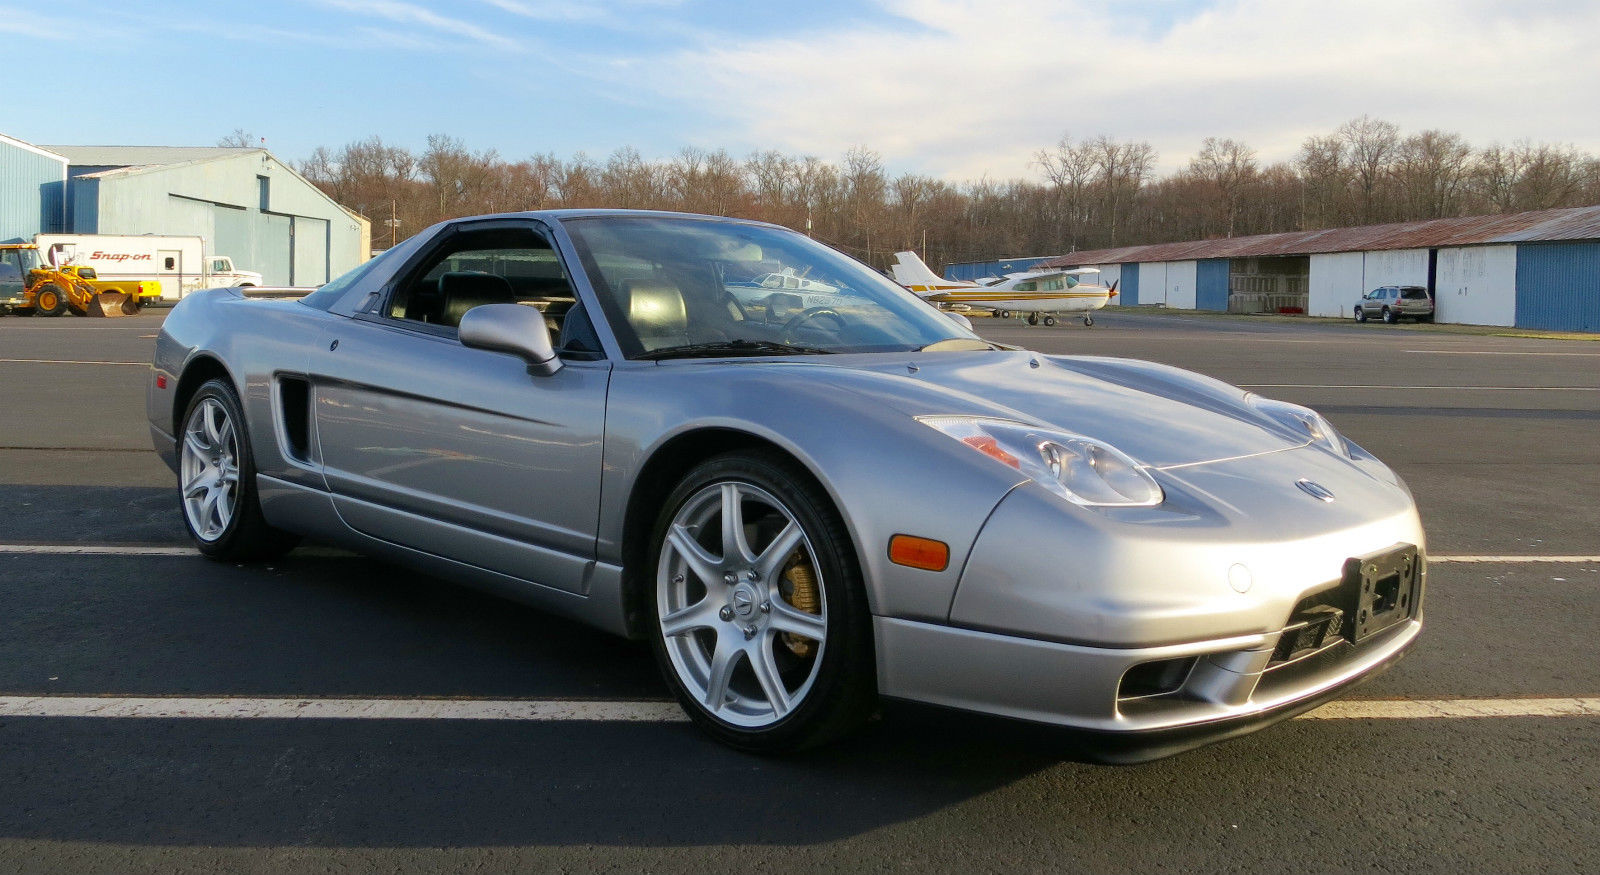 Acura NSX Targa With Only Miles For Sale On EBay - Acura nsx for sale by owner